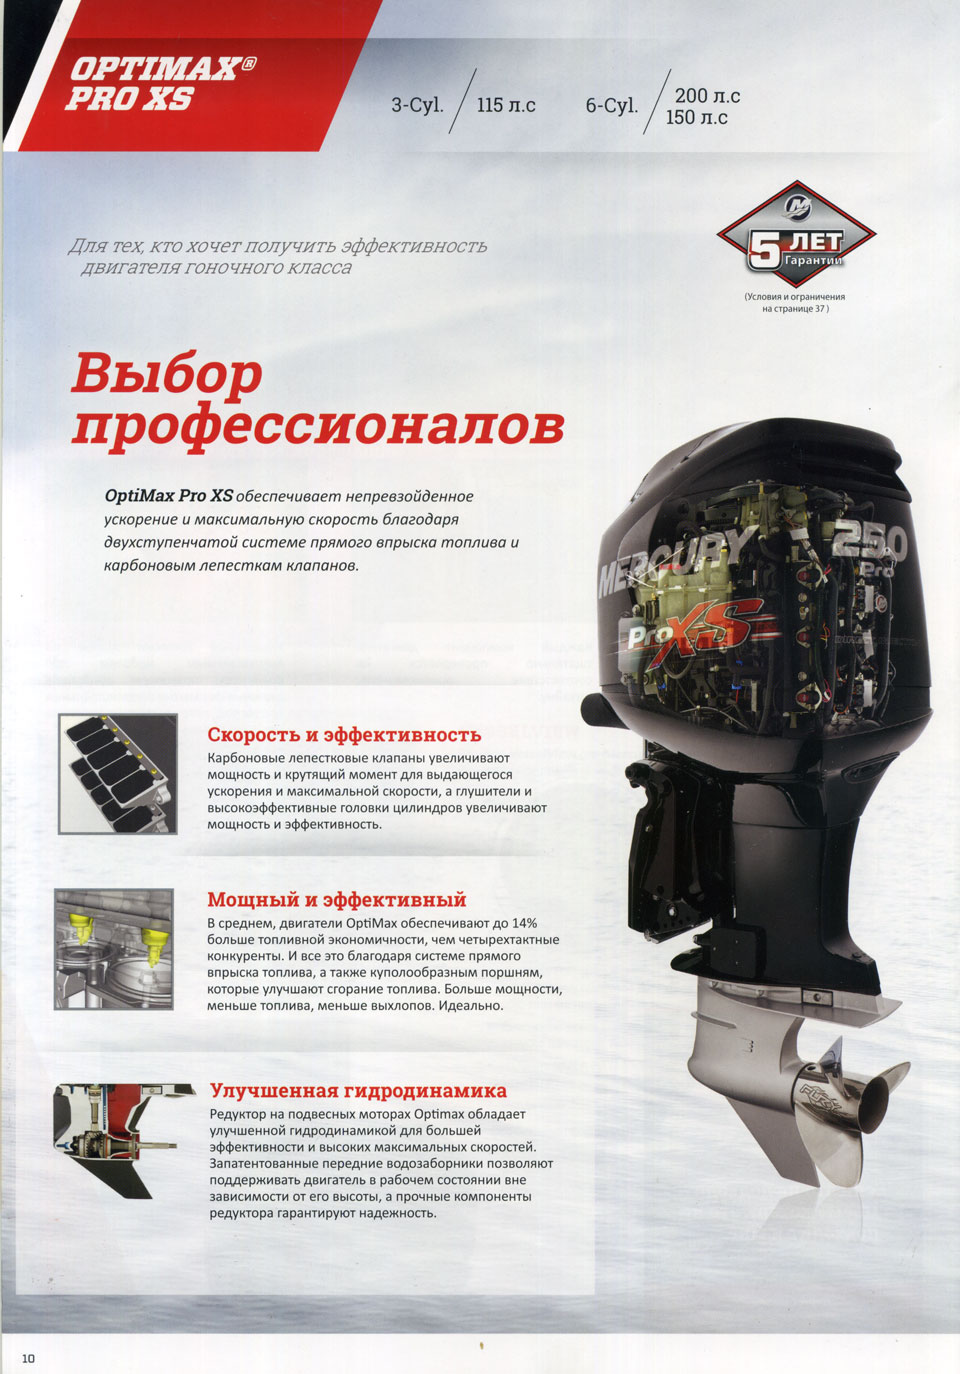 Mercury 2013 Optimax Pro XS 115 л.с. - выбор профессионалов